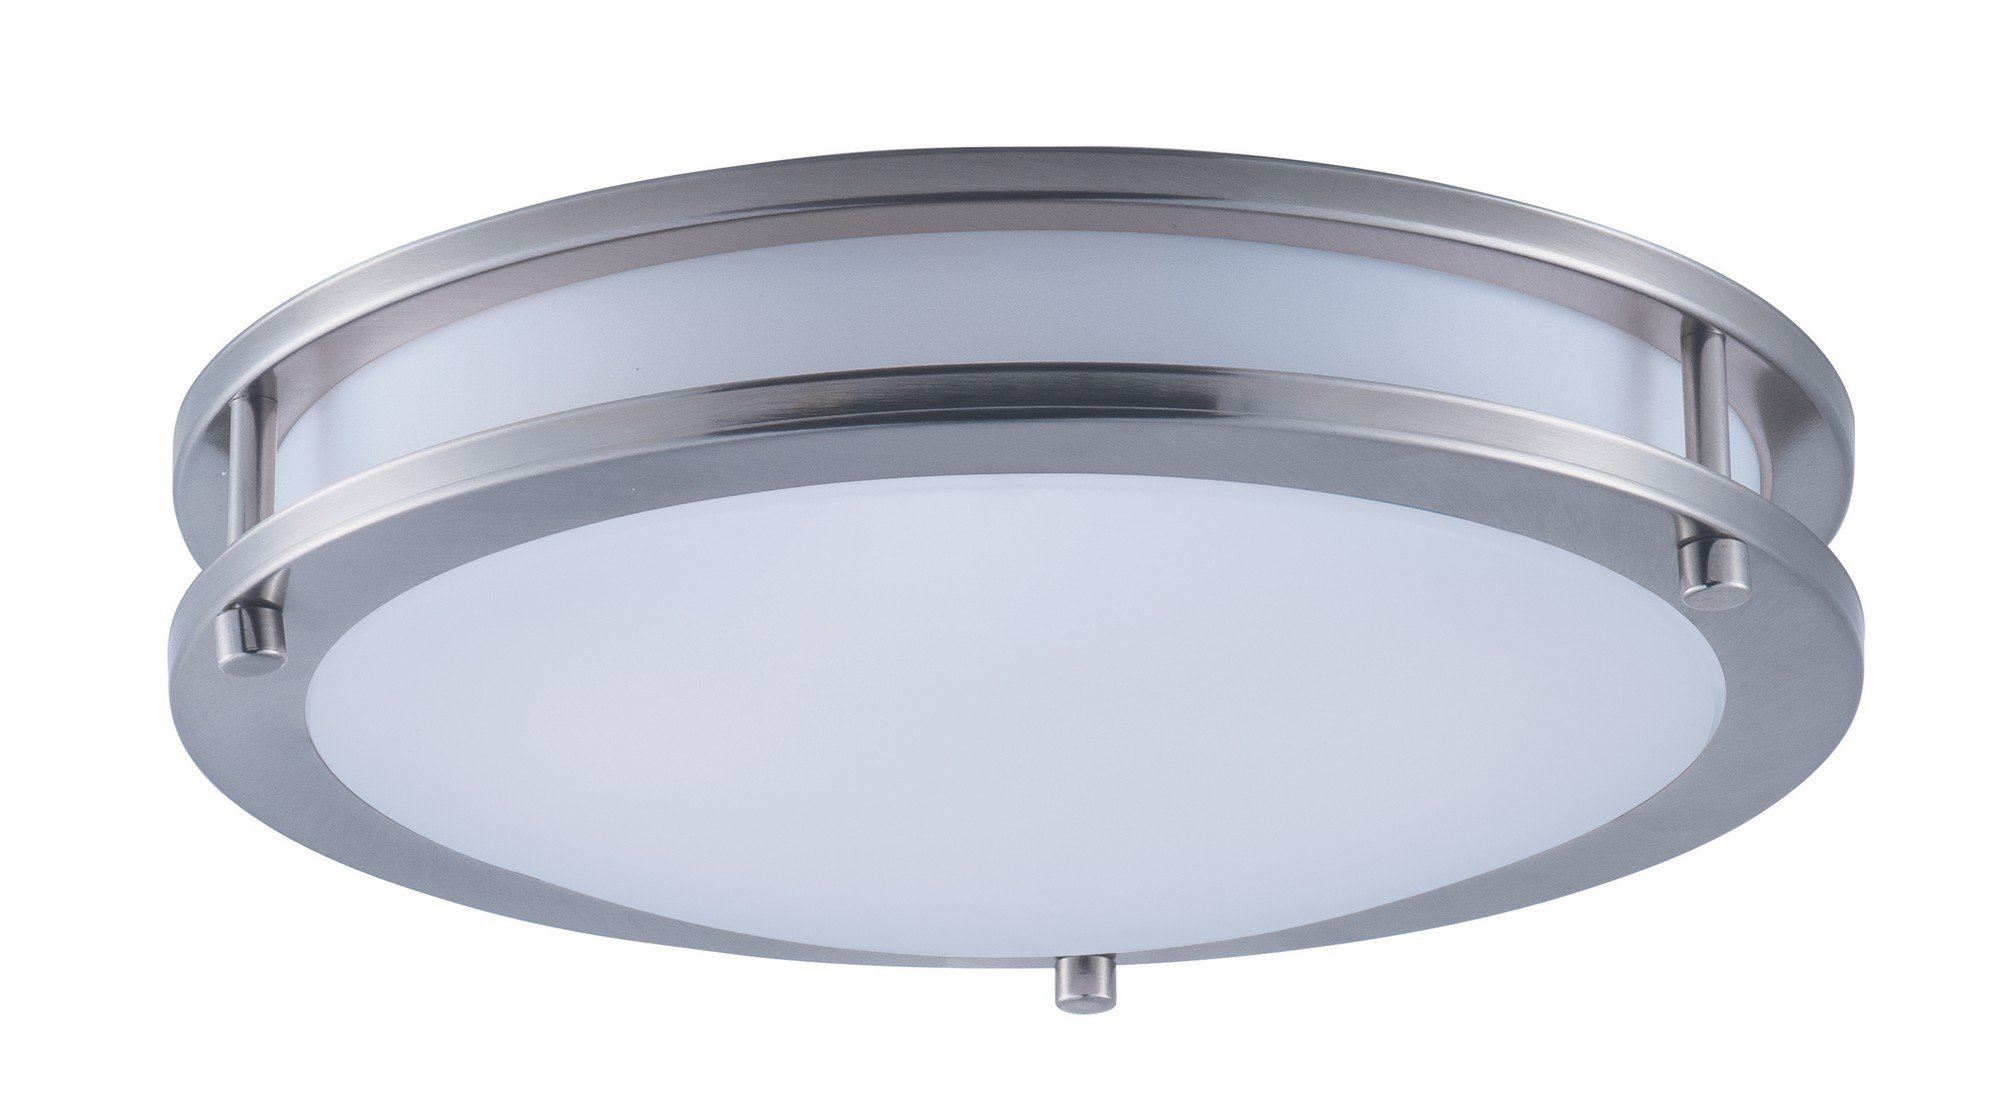 Maxim 55542WTSN Linear LED Flush Mount, Satin Nickel Finish, White Glass, LED Bulb , 40W Max., Wet Safety Rating, Standard Dimmable, Glass Shade Material, 2016 Rated Lumens